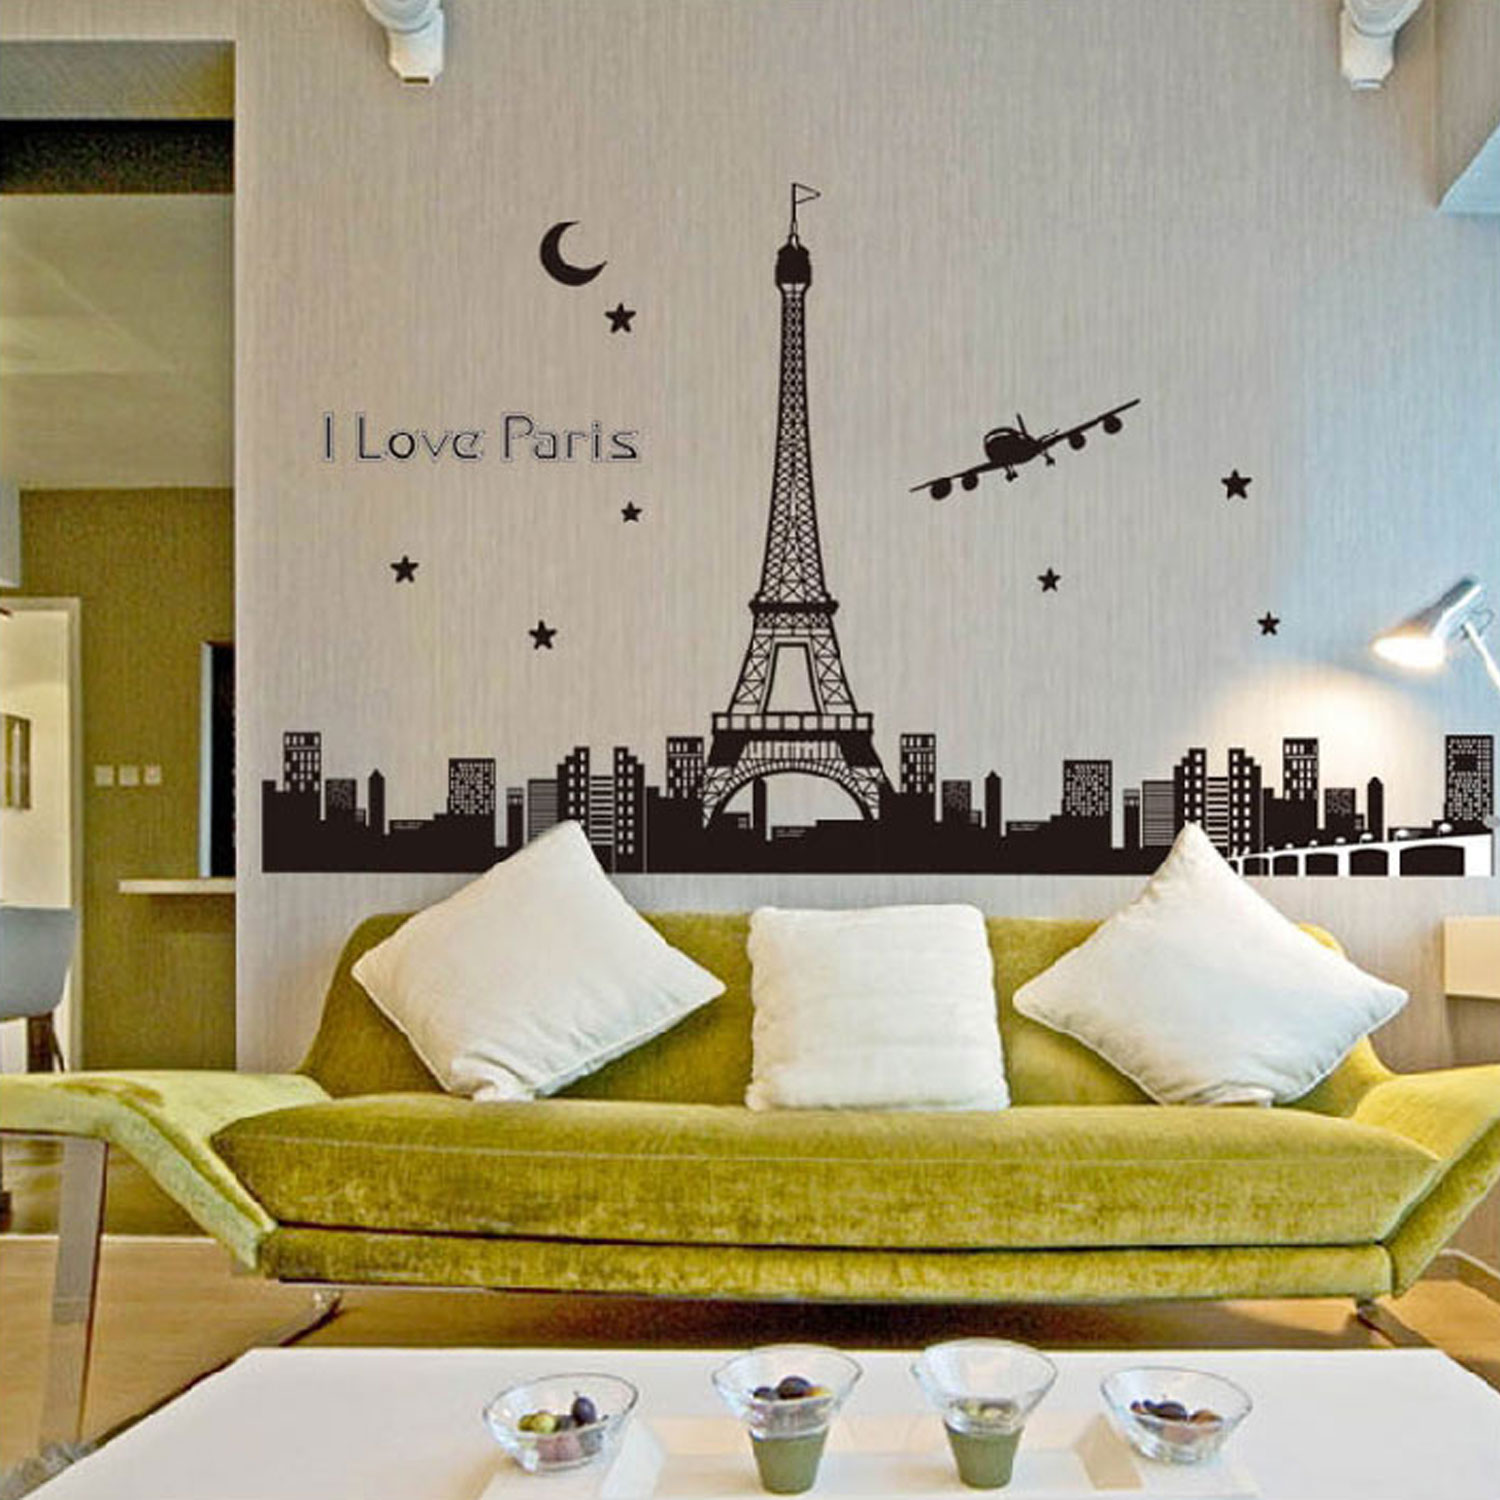 Trendbox PVC Removeable Decorative Art DIY Wall Decor Decal Sticker Paper For Home Bedroon Living Nursery Room Party - Glow: I Love Paris